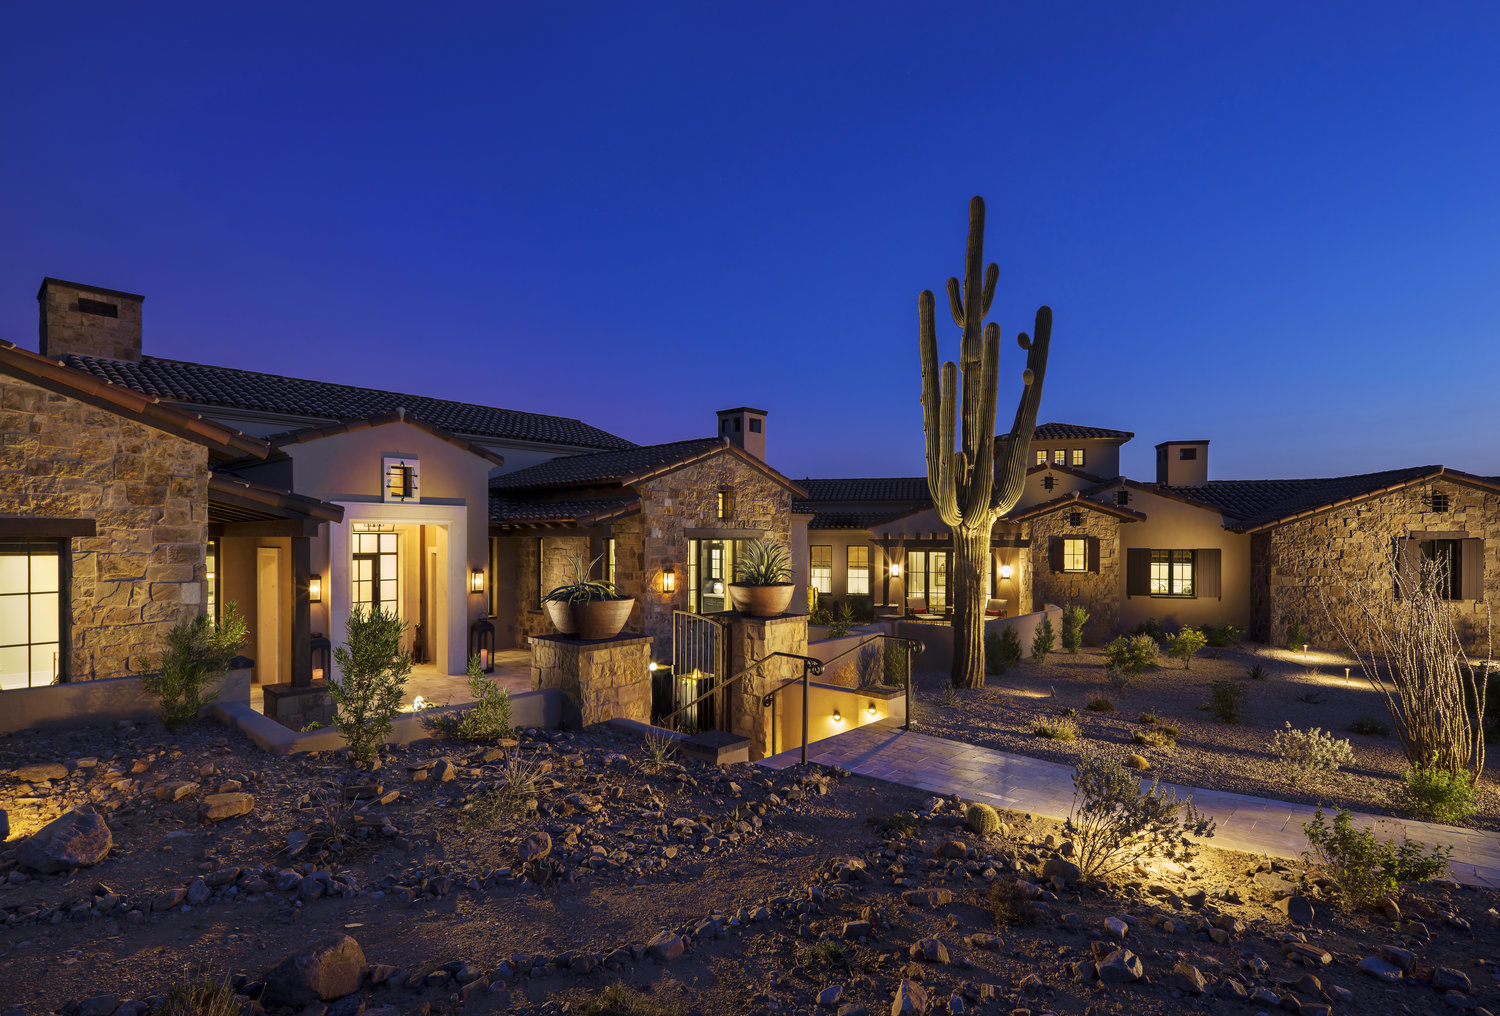 Revisiting Old-World Allure - See one of our Custom Homes featured in Phoenix Home & Garden!